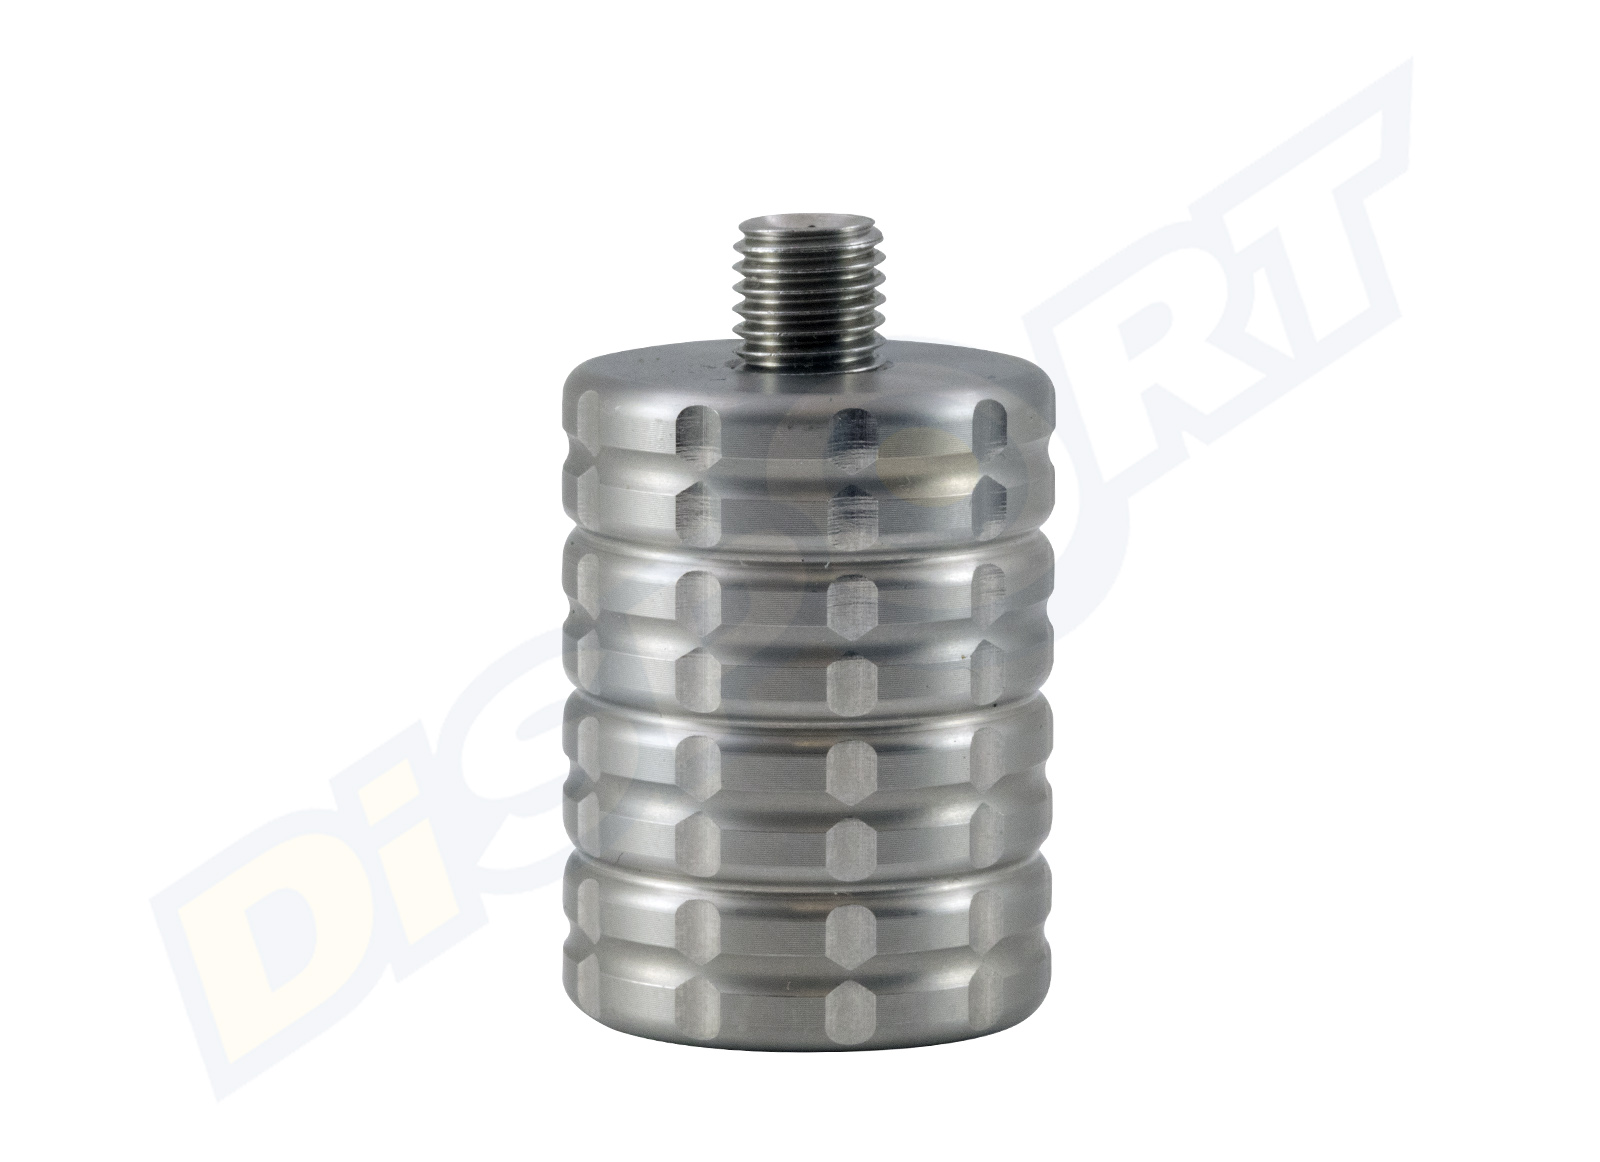 AXCEL PESI PER STABILIZZATORE 4OZ 1.00'' STAINLESS STEEL